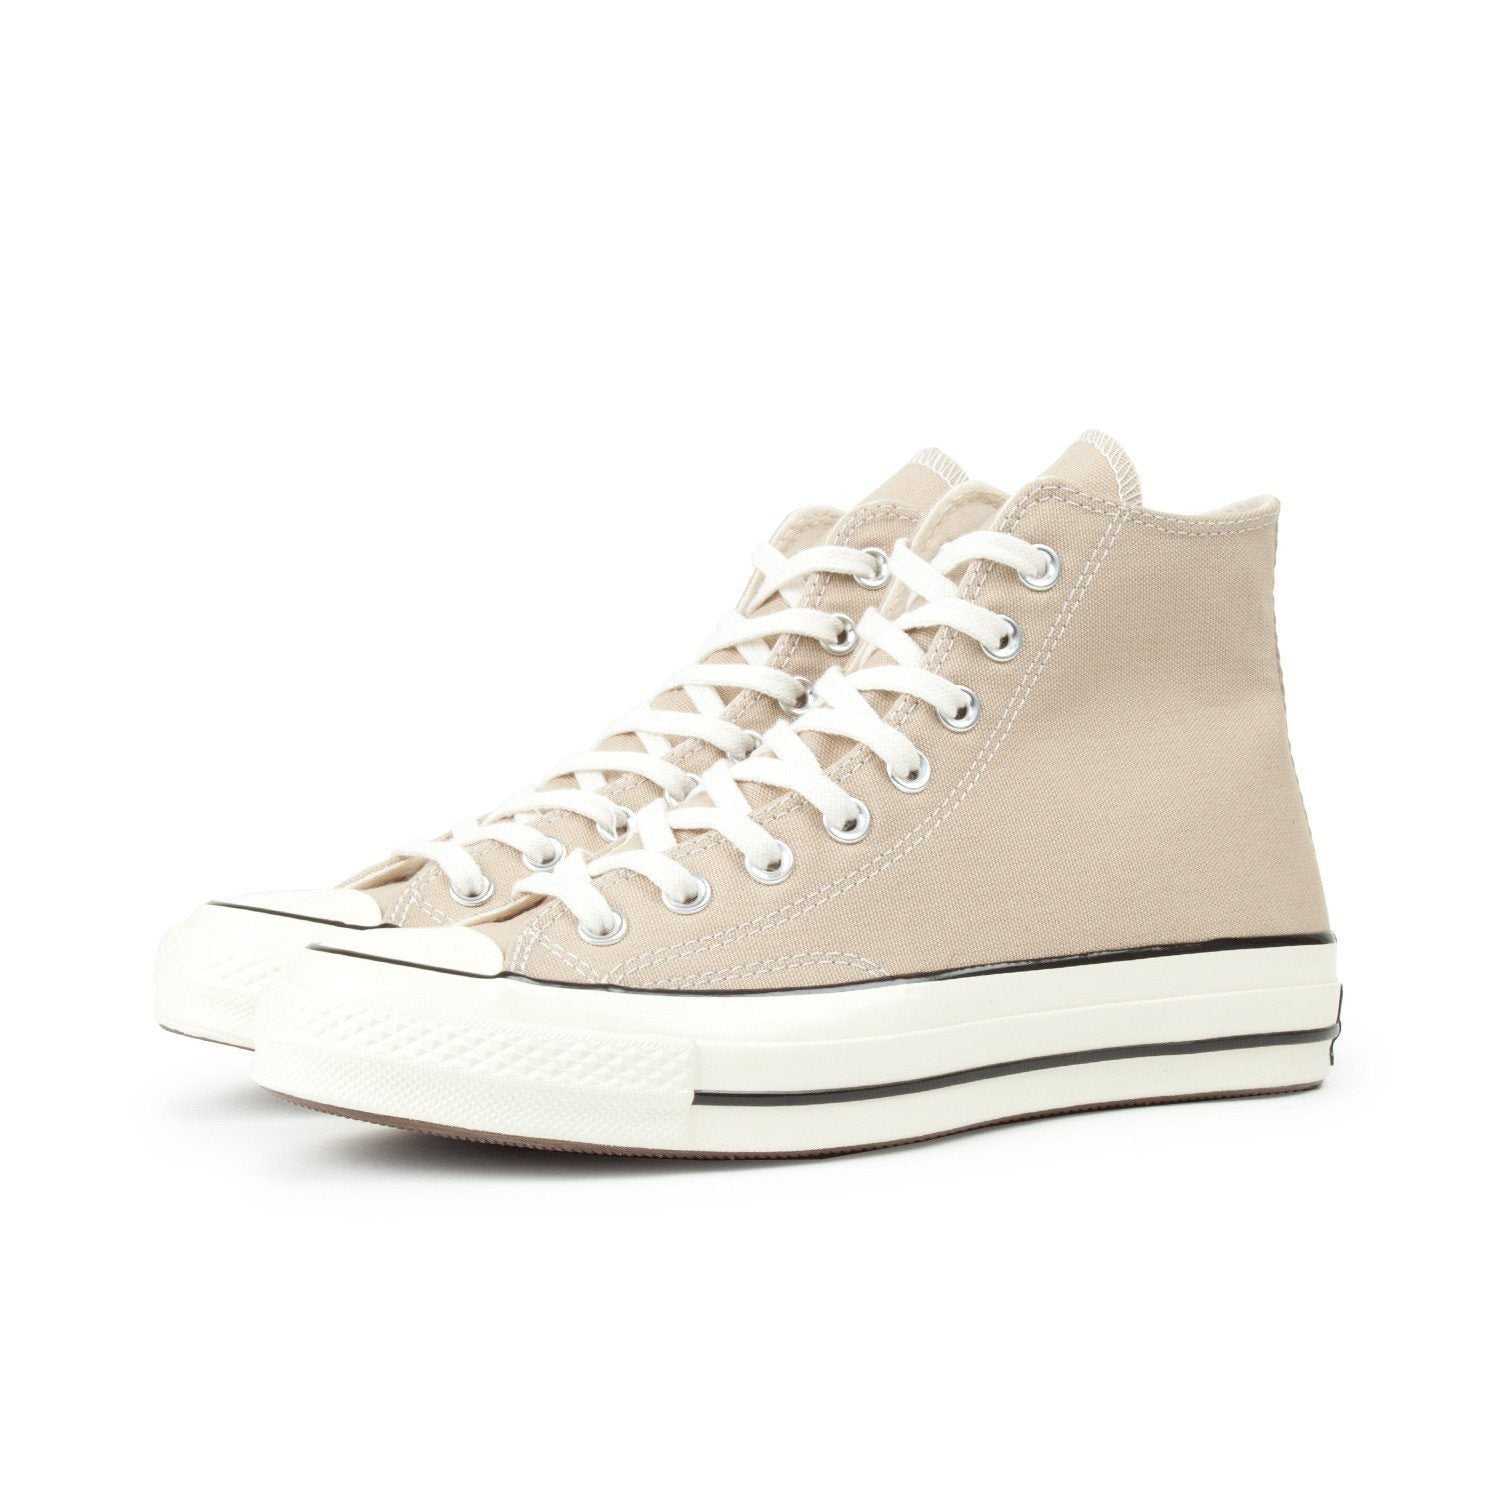 Converse Chuck Taylor All star 70 Hi (Vintage Khaki, Black & Egret) - Number Six